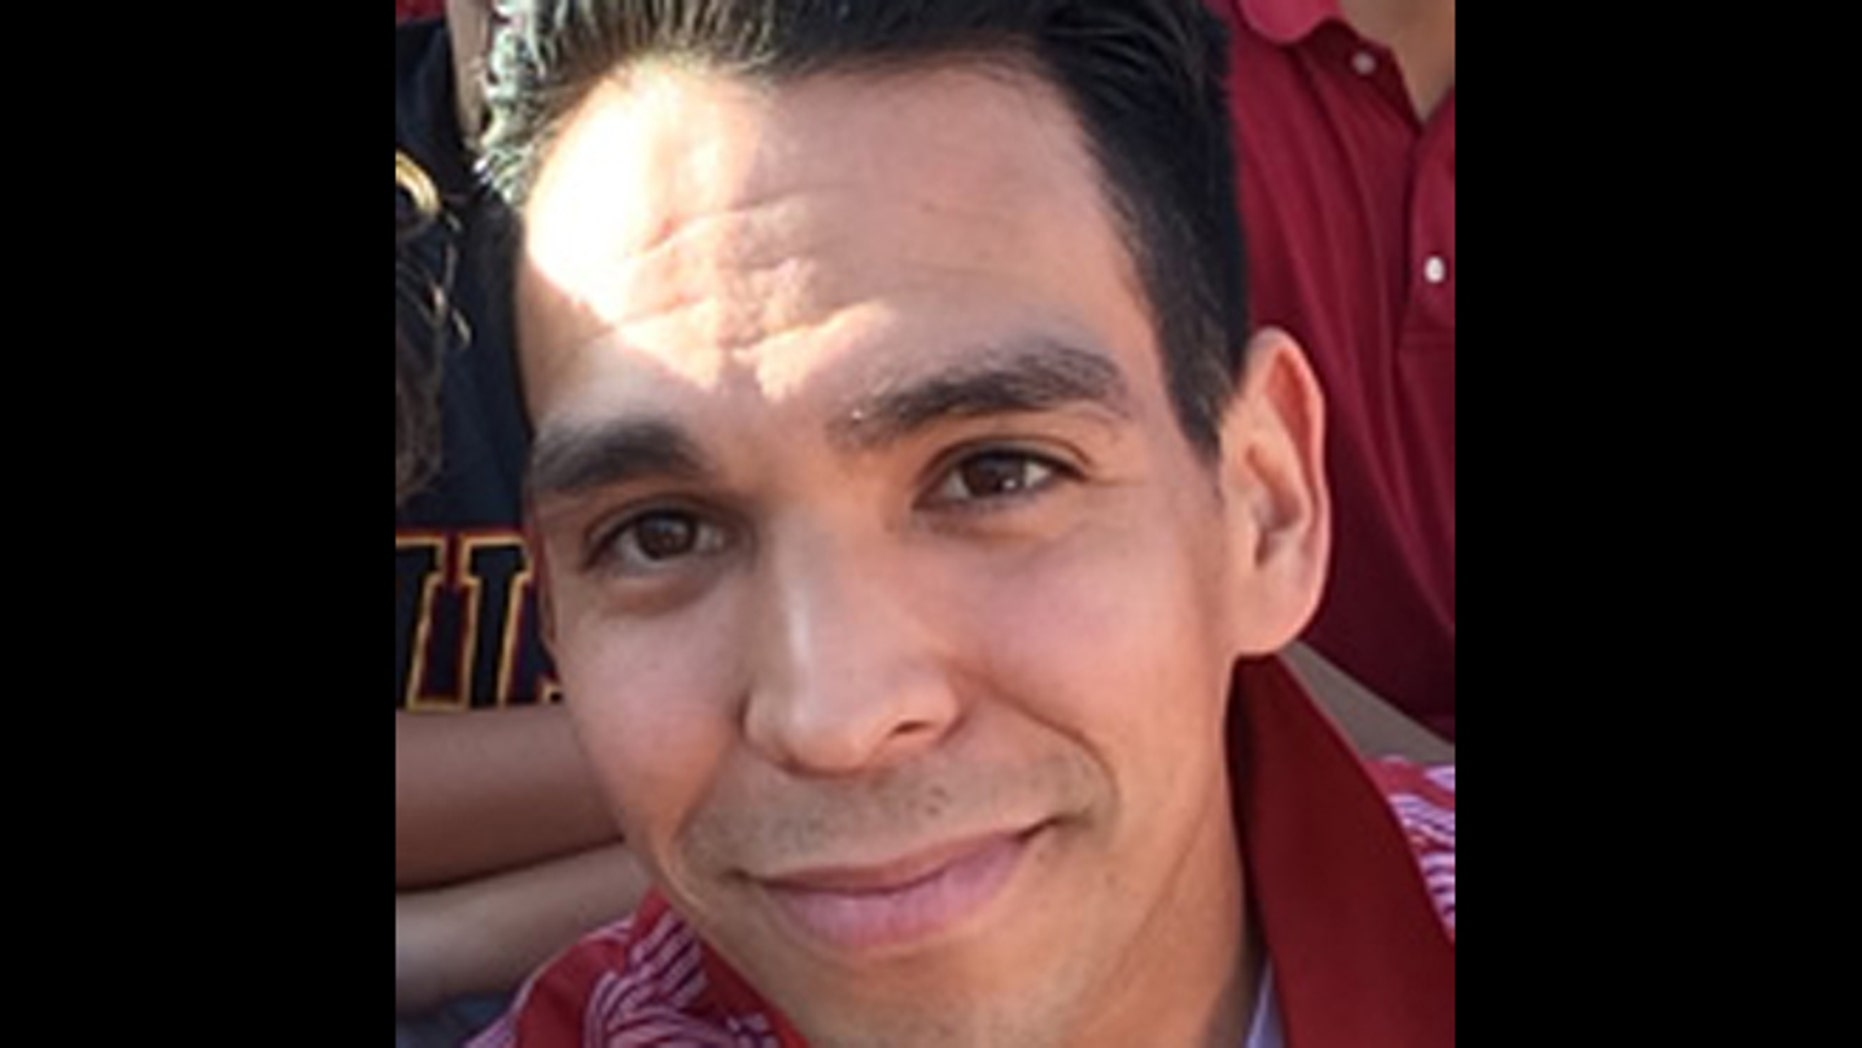 Omar Arce Meza, 33, vanished Thursday, Jan. 8 in Palm Desert, Calif., after leaving a dinner with co-workers.